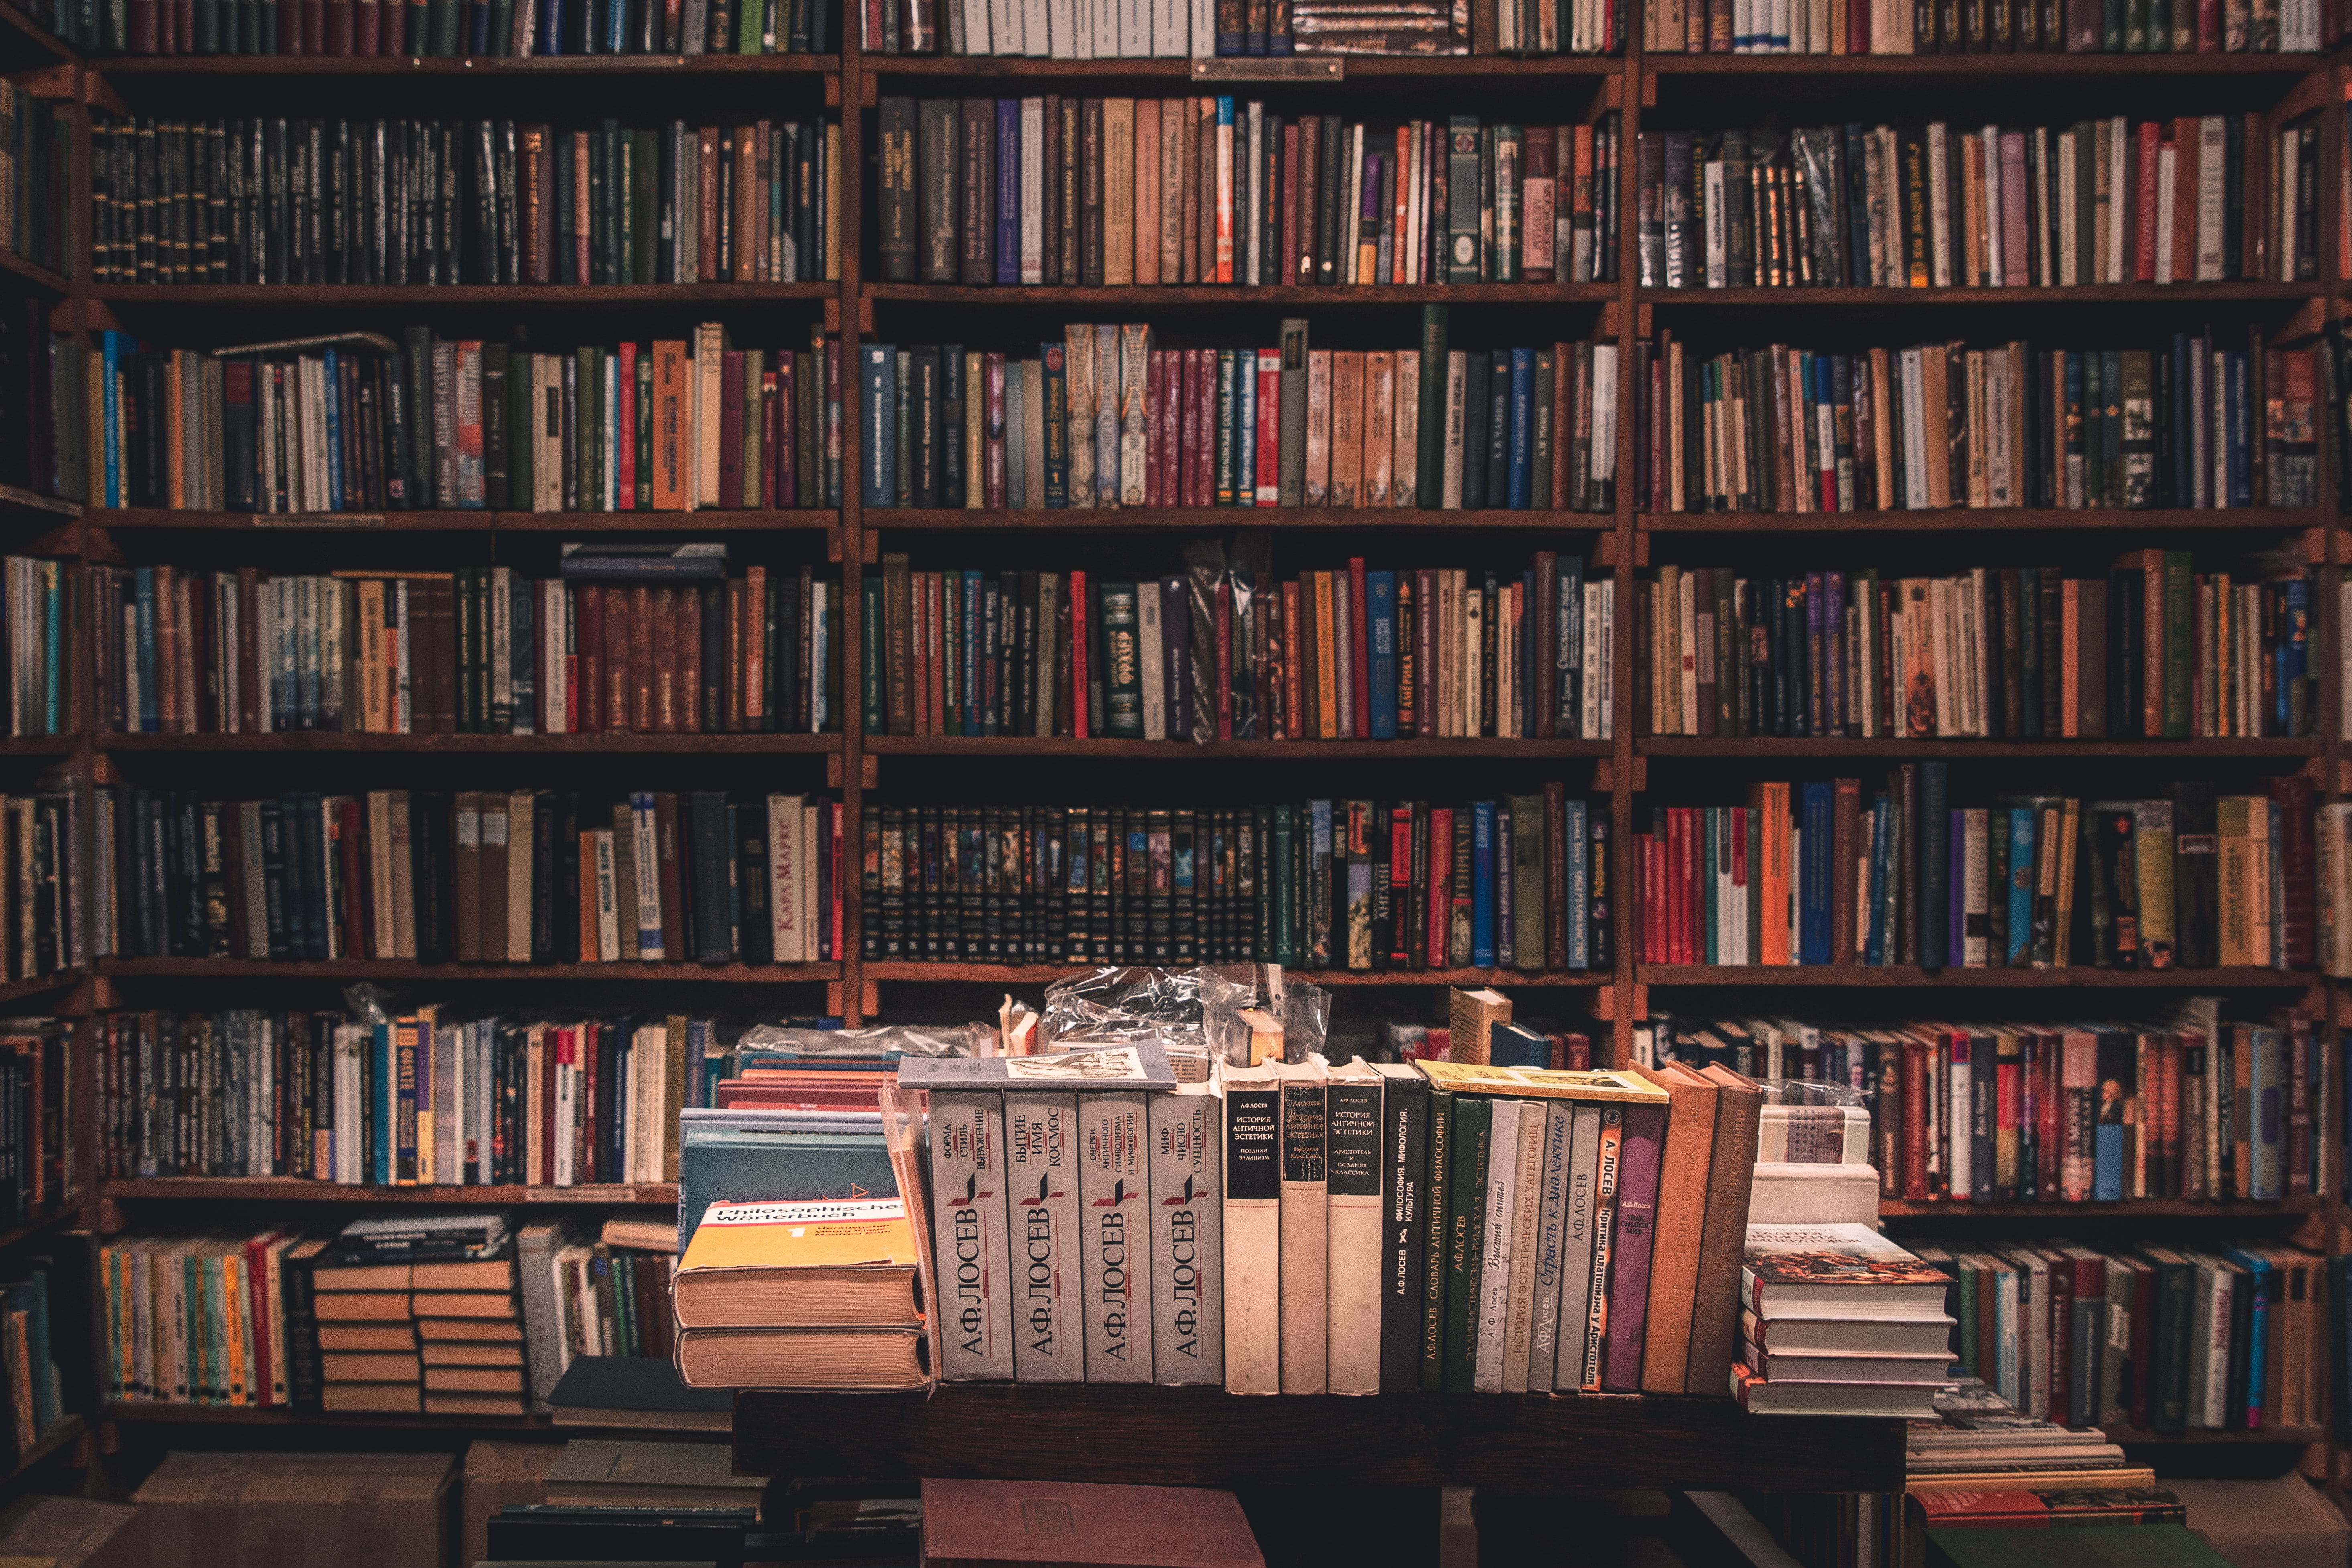 library with books